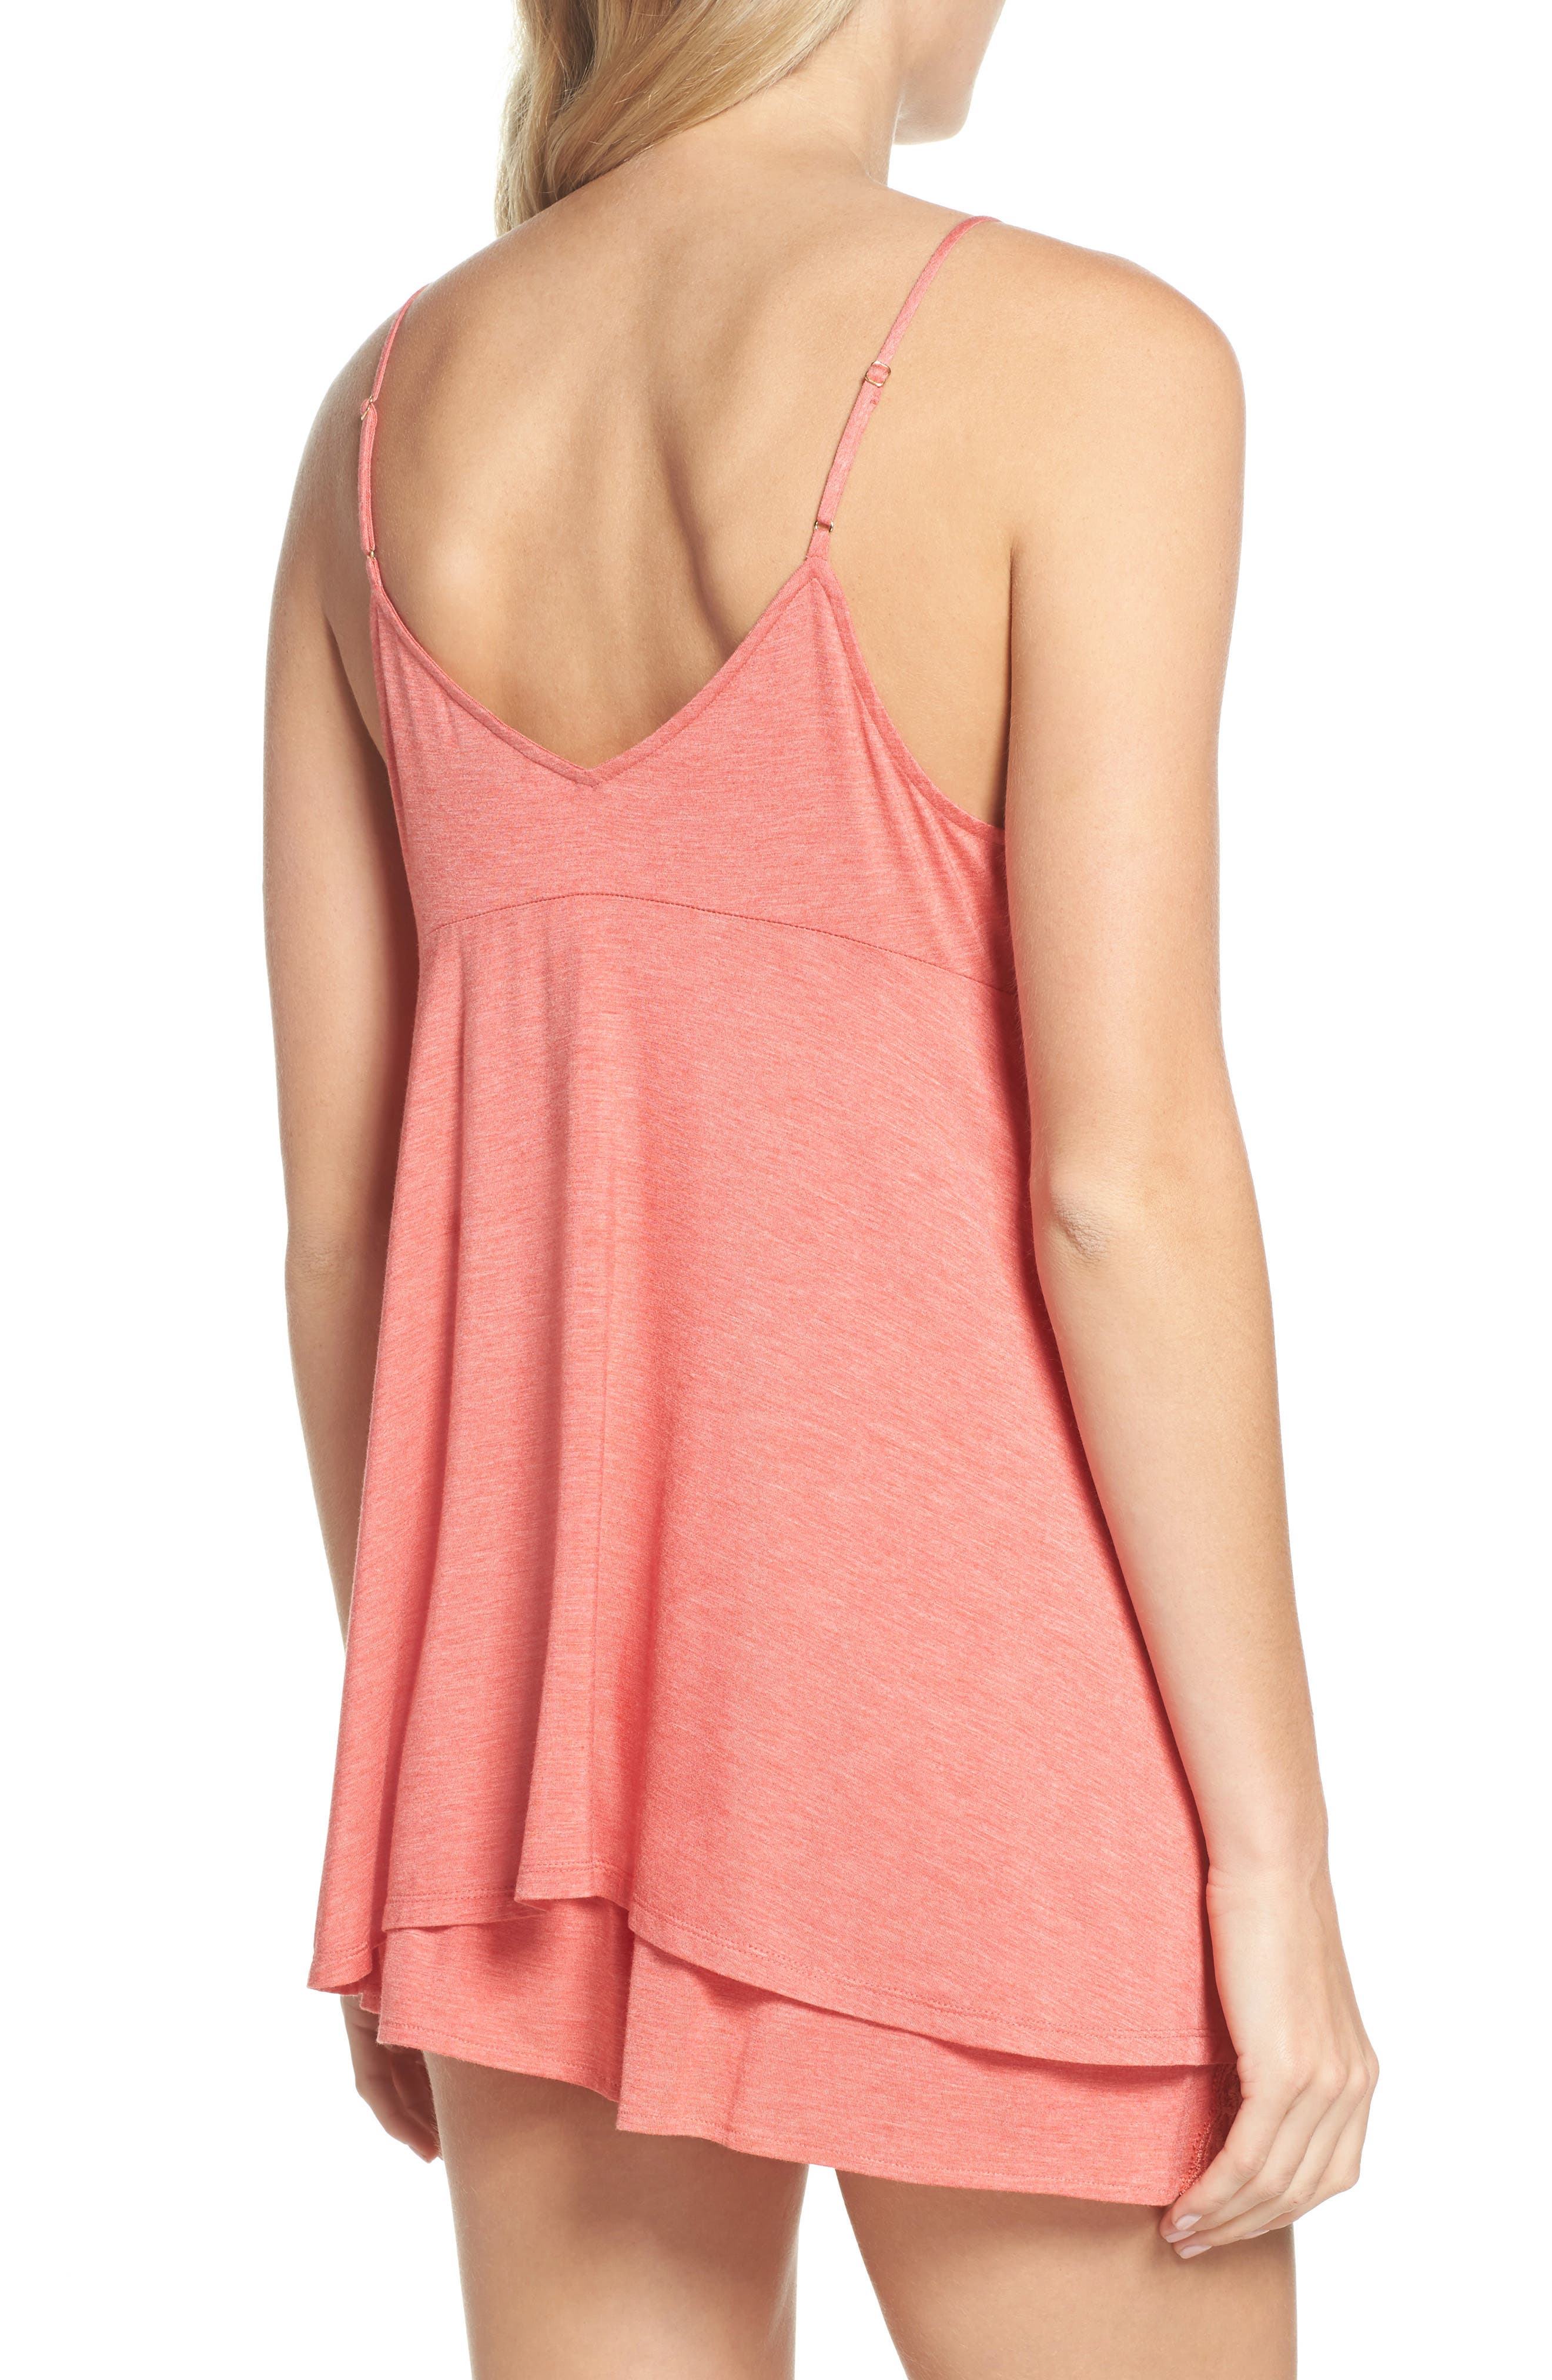 Feathers Essential Camisole,                             Alternate thumbnail 2, color,                             Coral